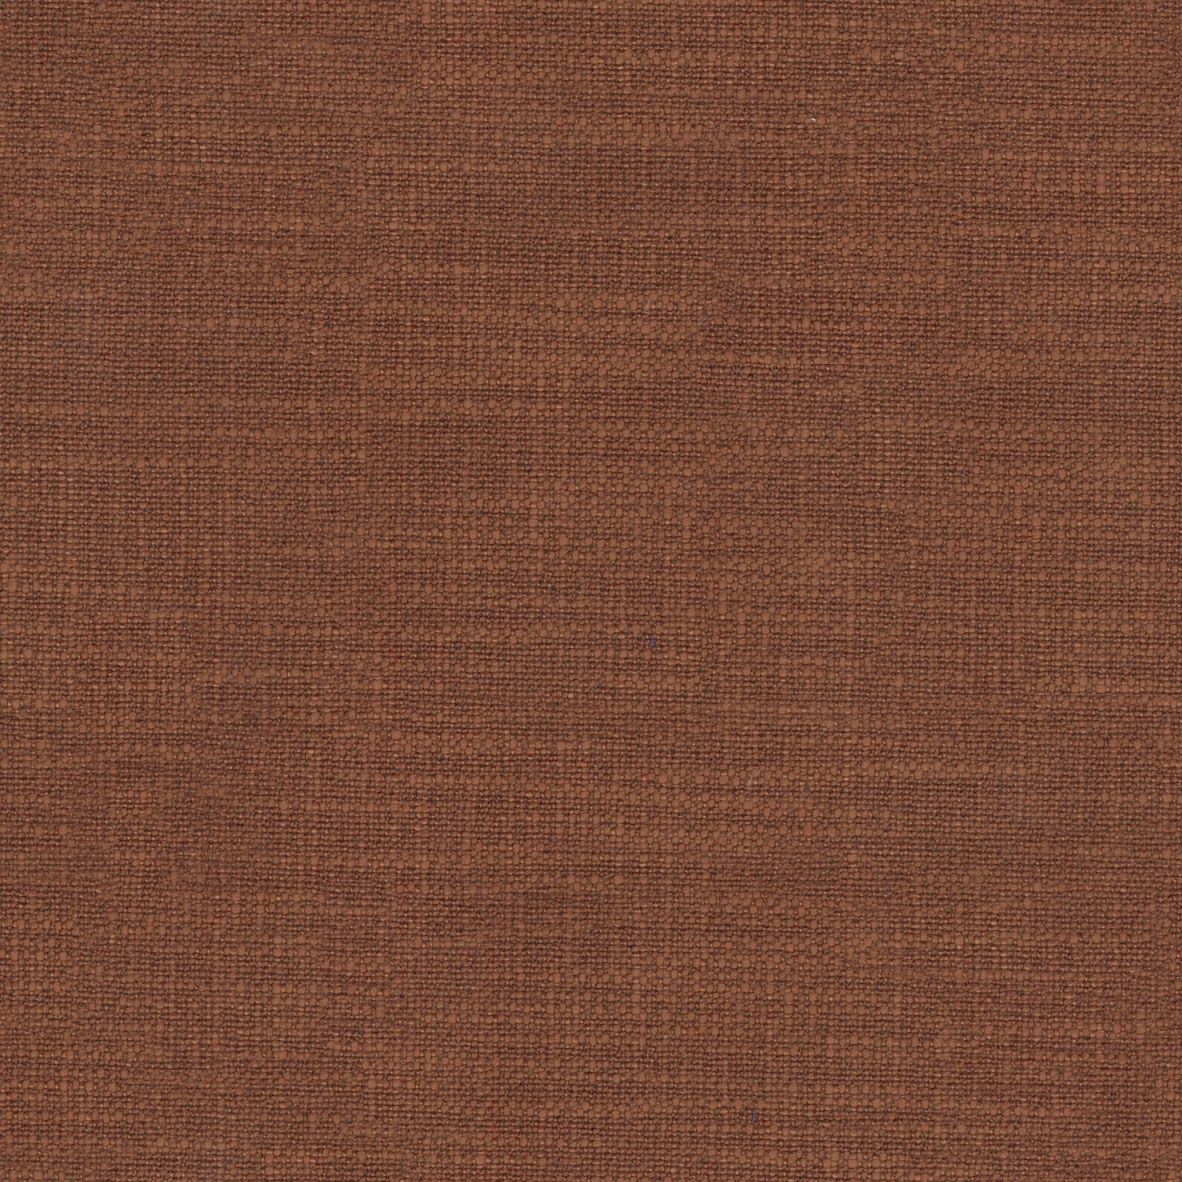 Seamless Brown Fabric Texture Maps Texturise